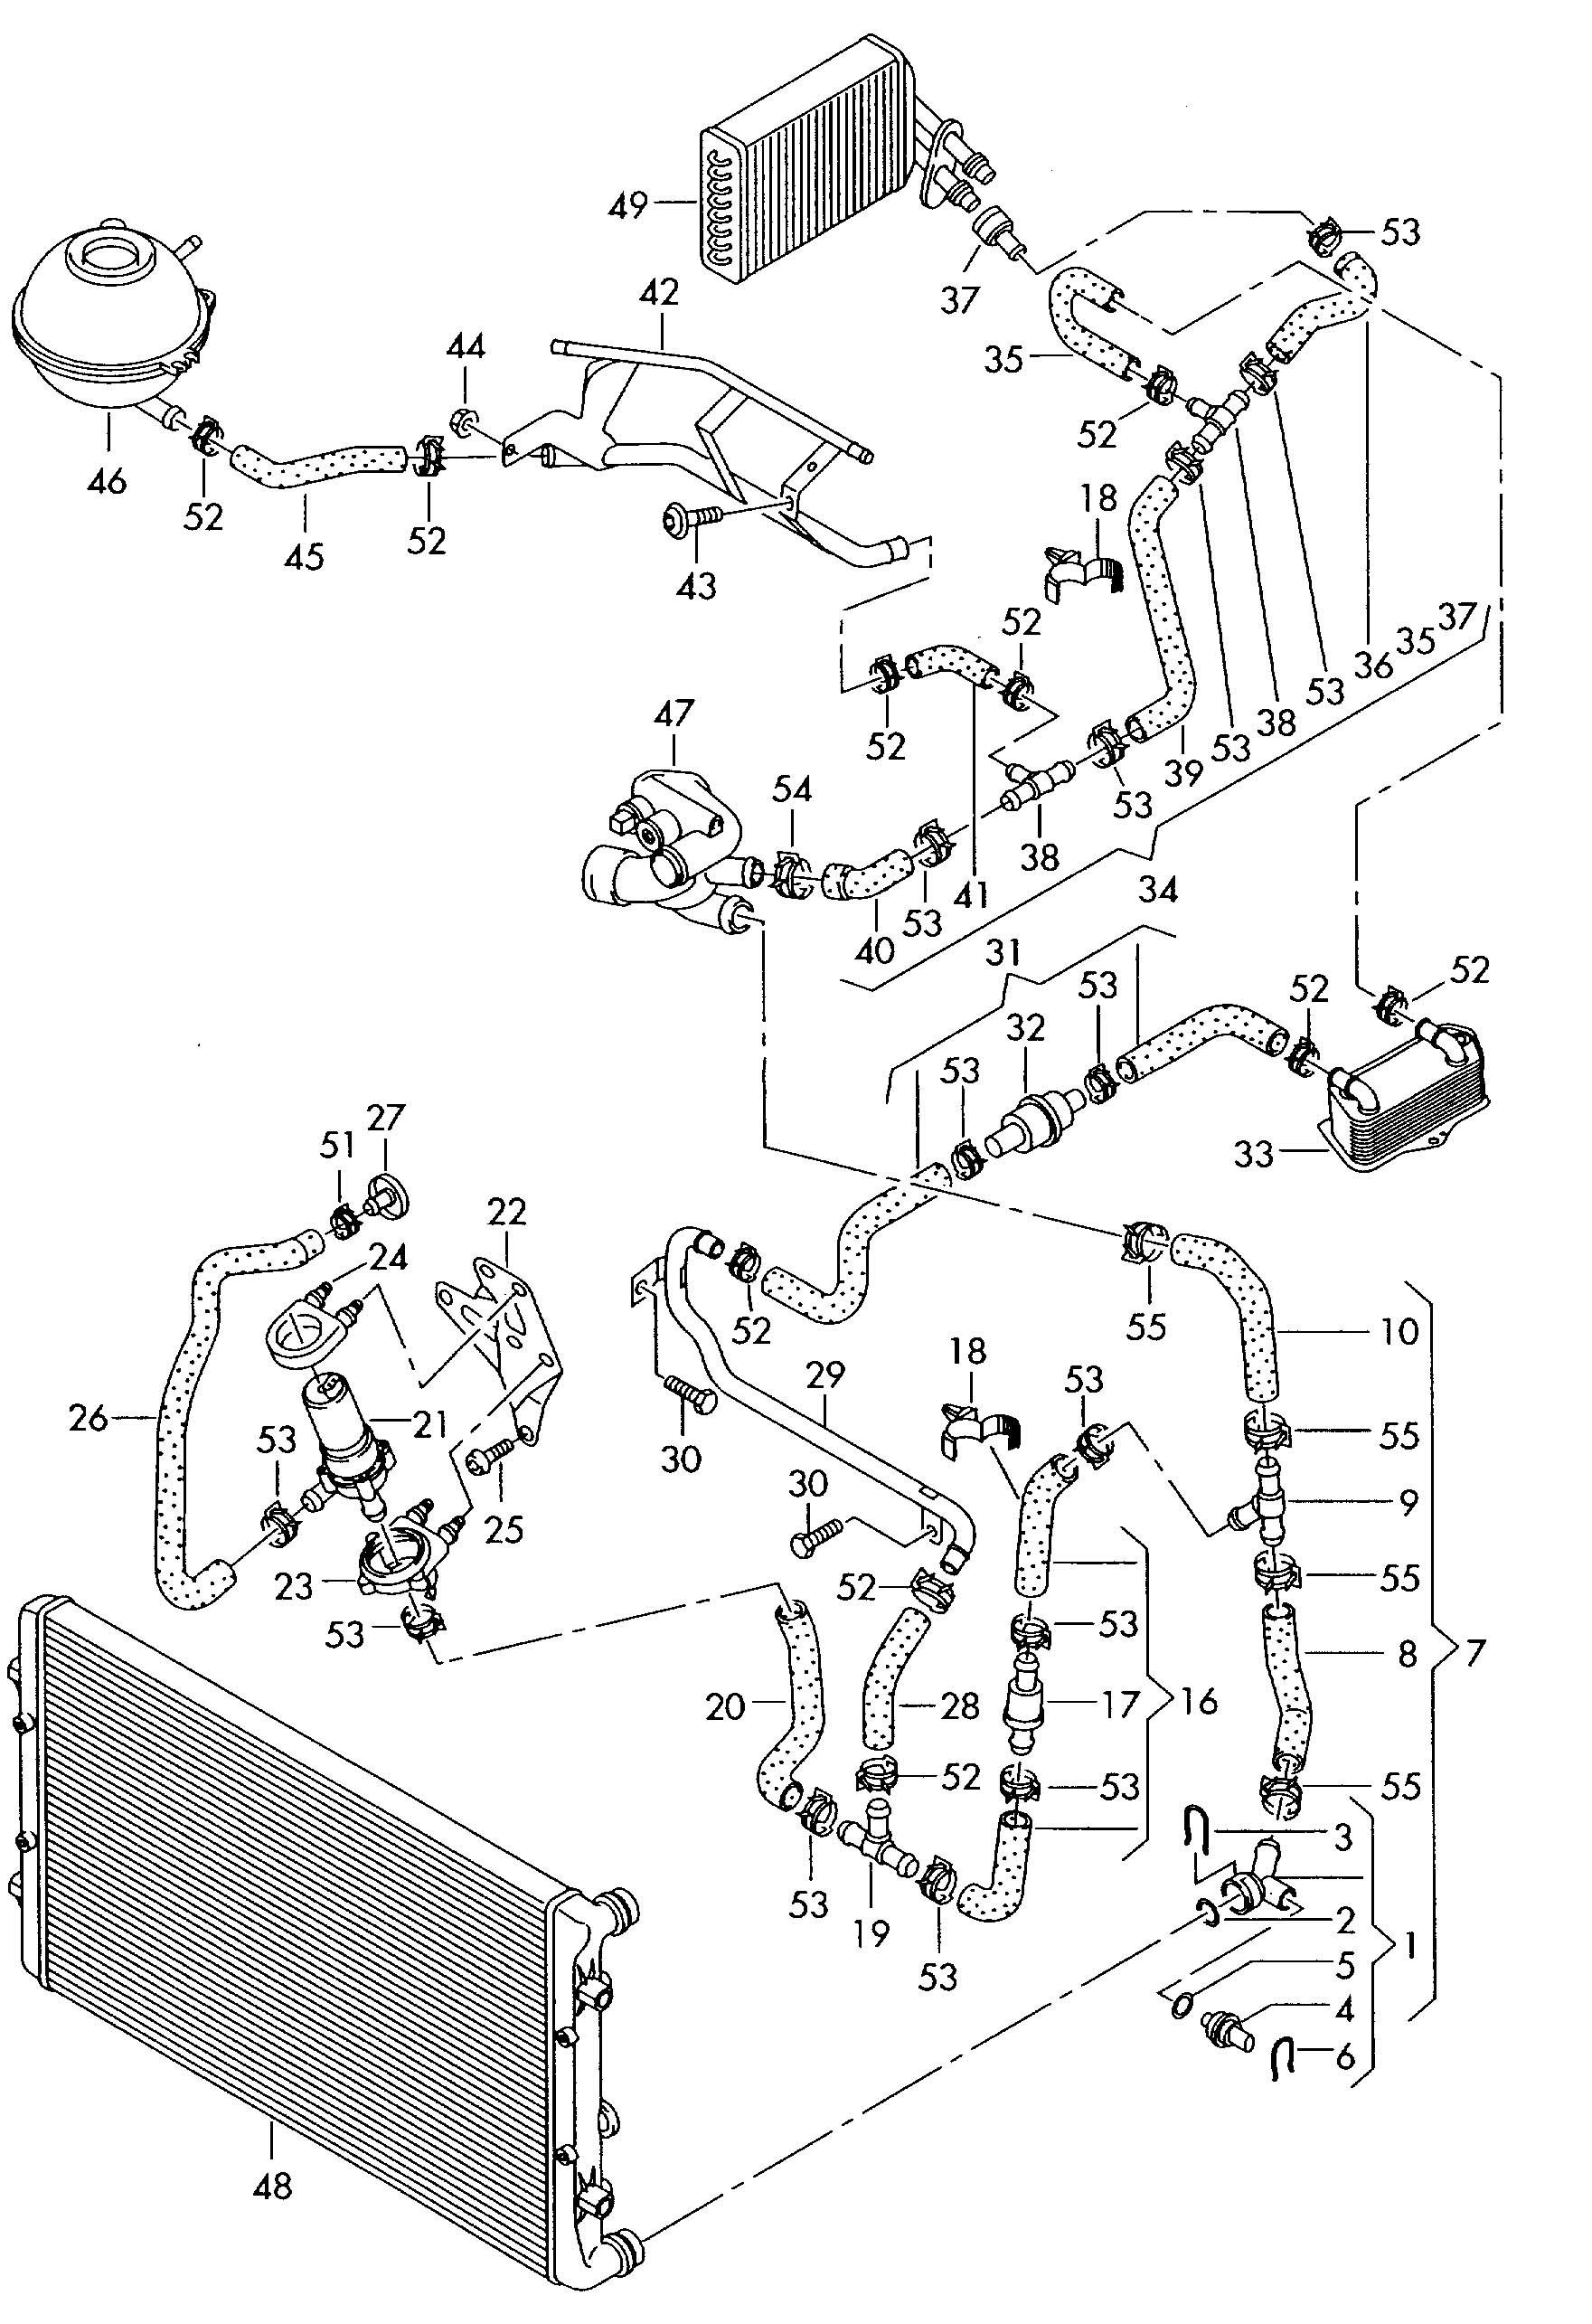 2007 Audi A4 Engine Diagram How to Replace Timing Belt